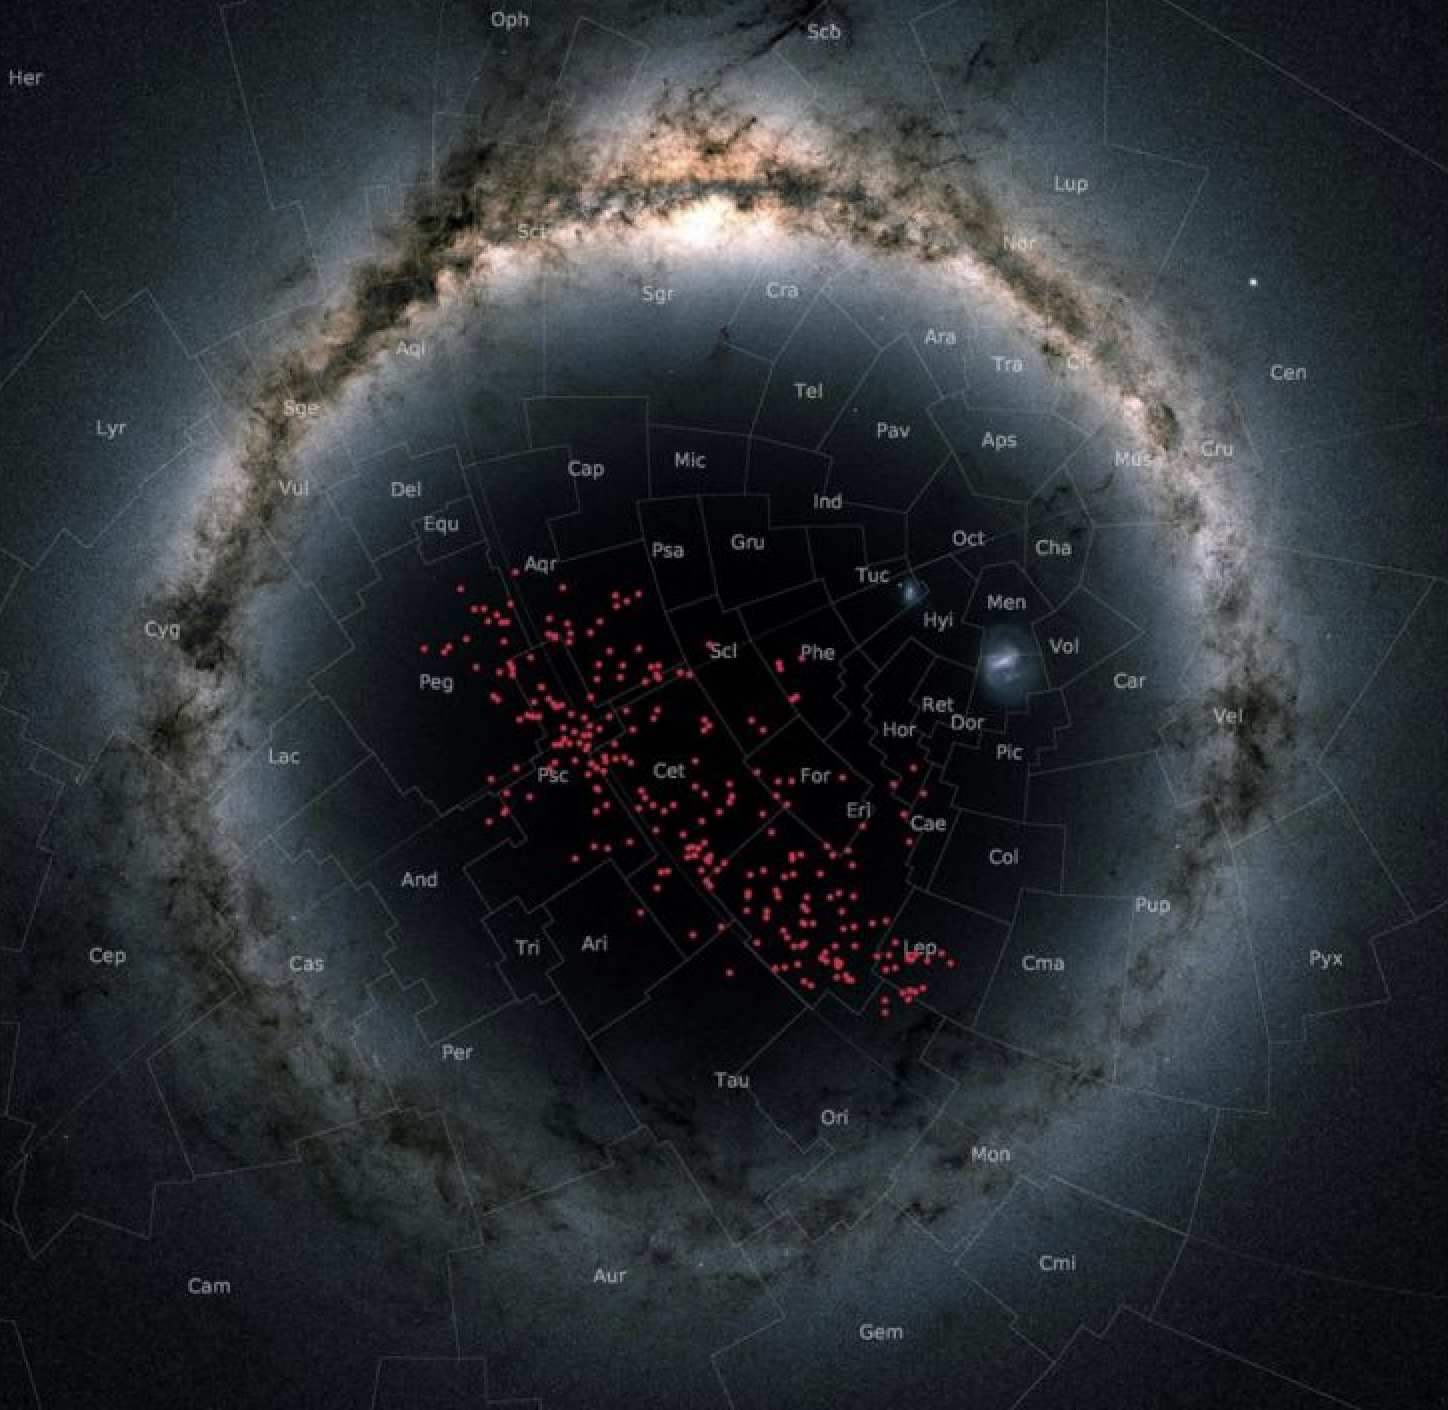 River of stars map galaxy Gaia discovery